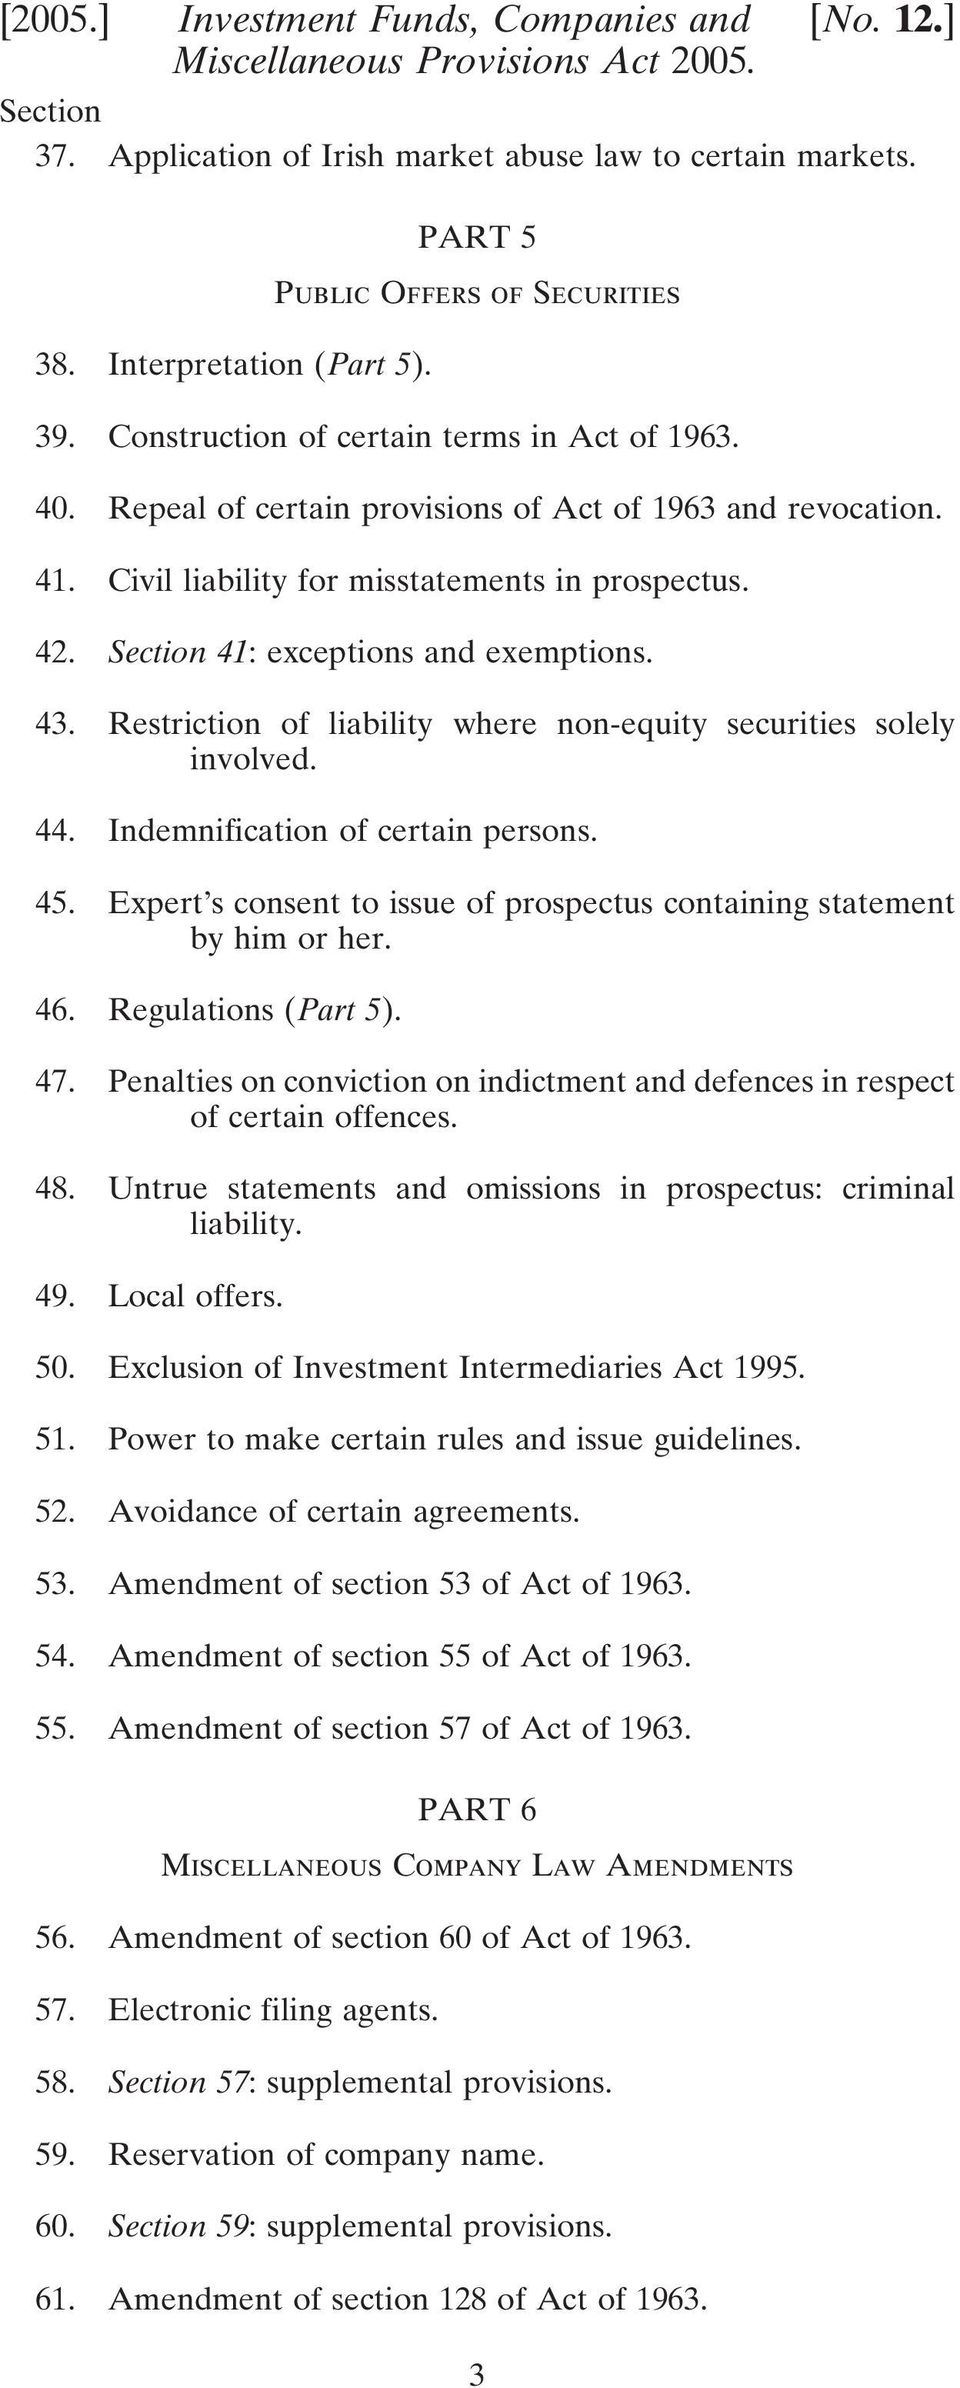 Section 41: exceptions and exemptions. 43. Restriction of liability where non-equity securities solely involved. 44. Indemnification of certain persons. 45.